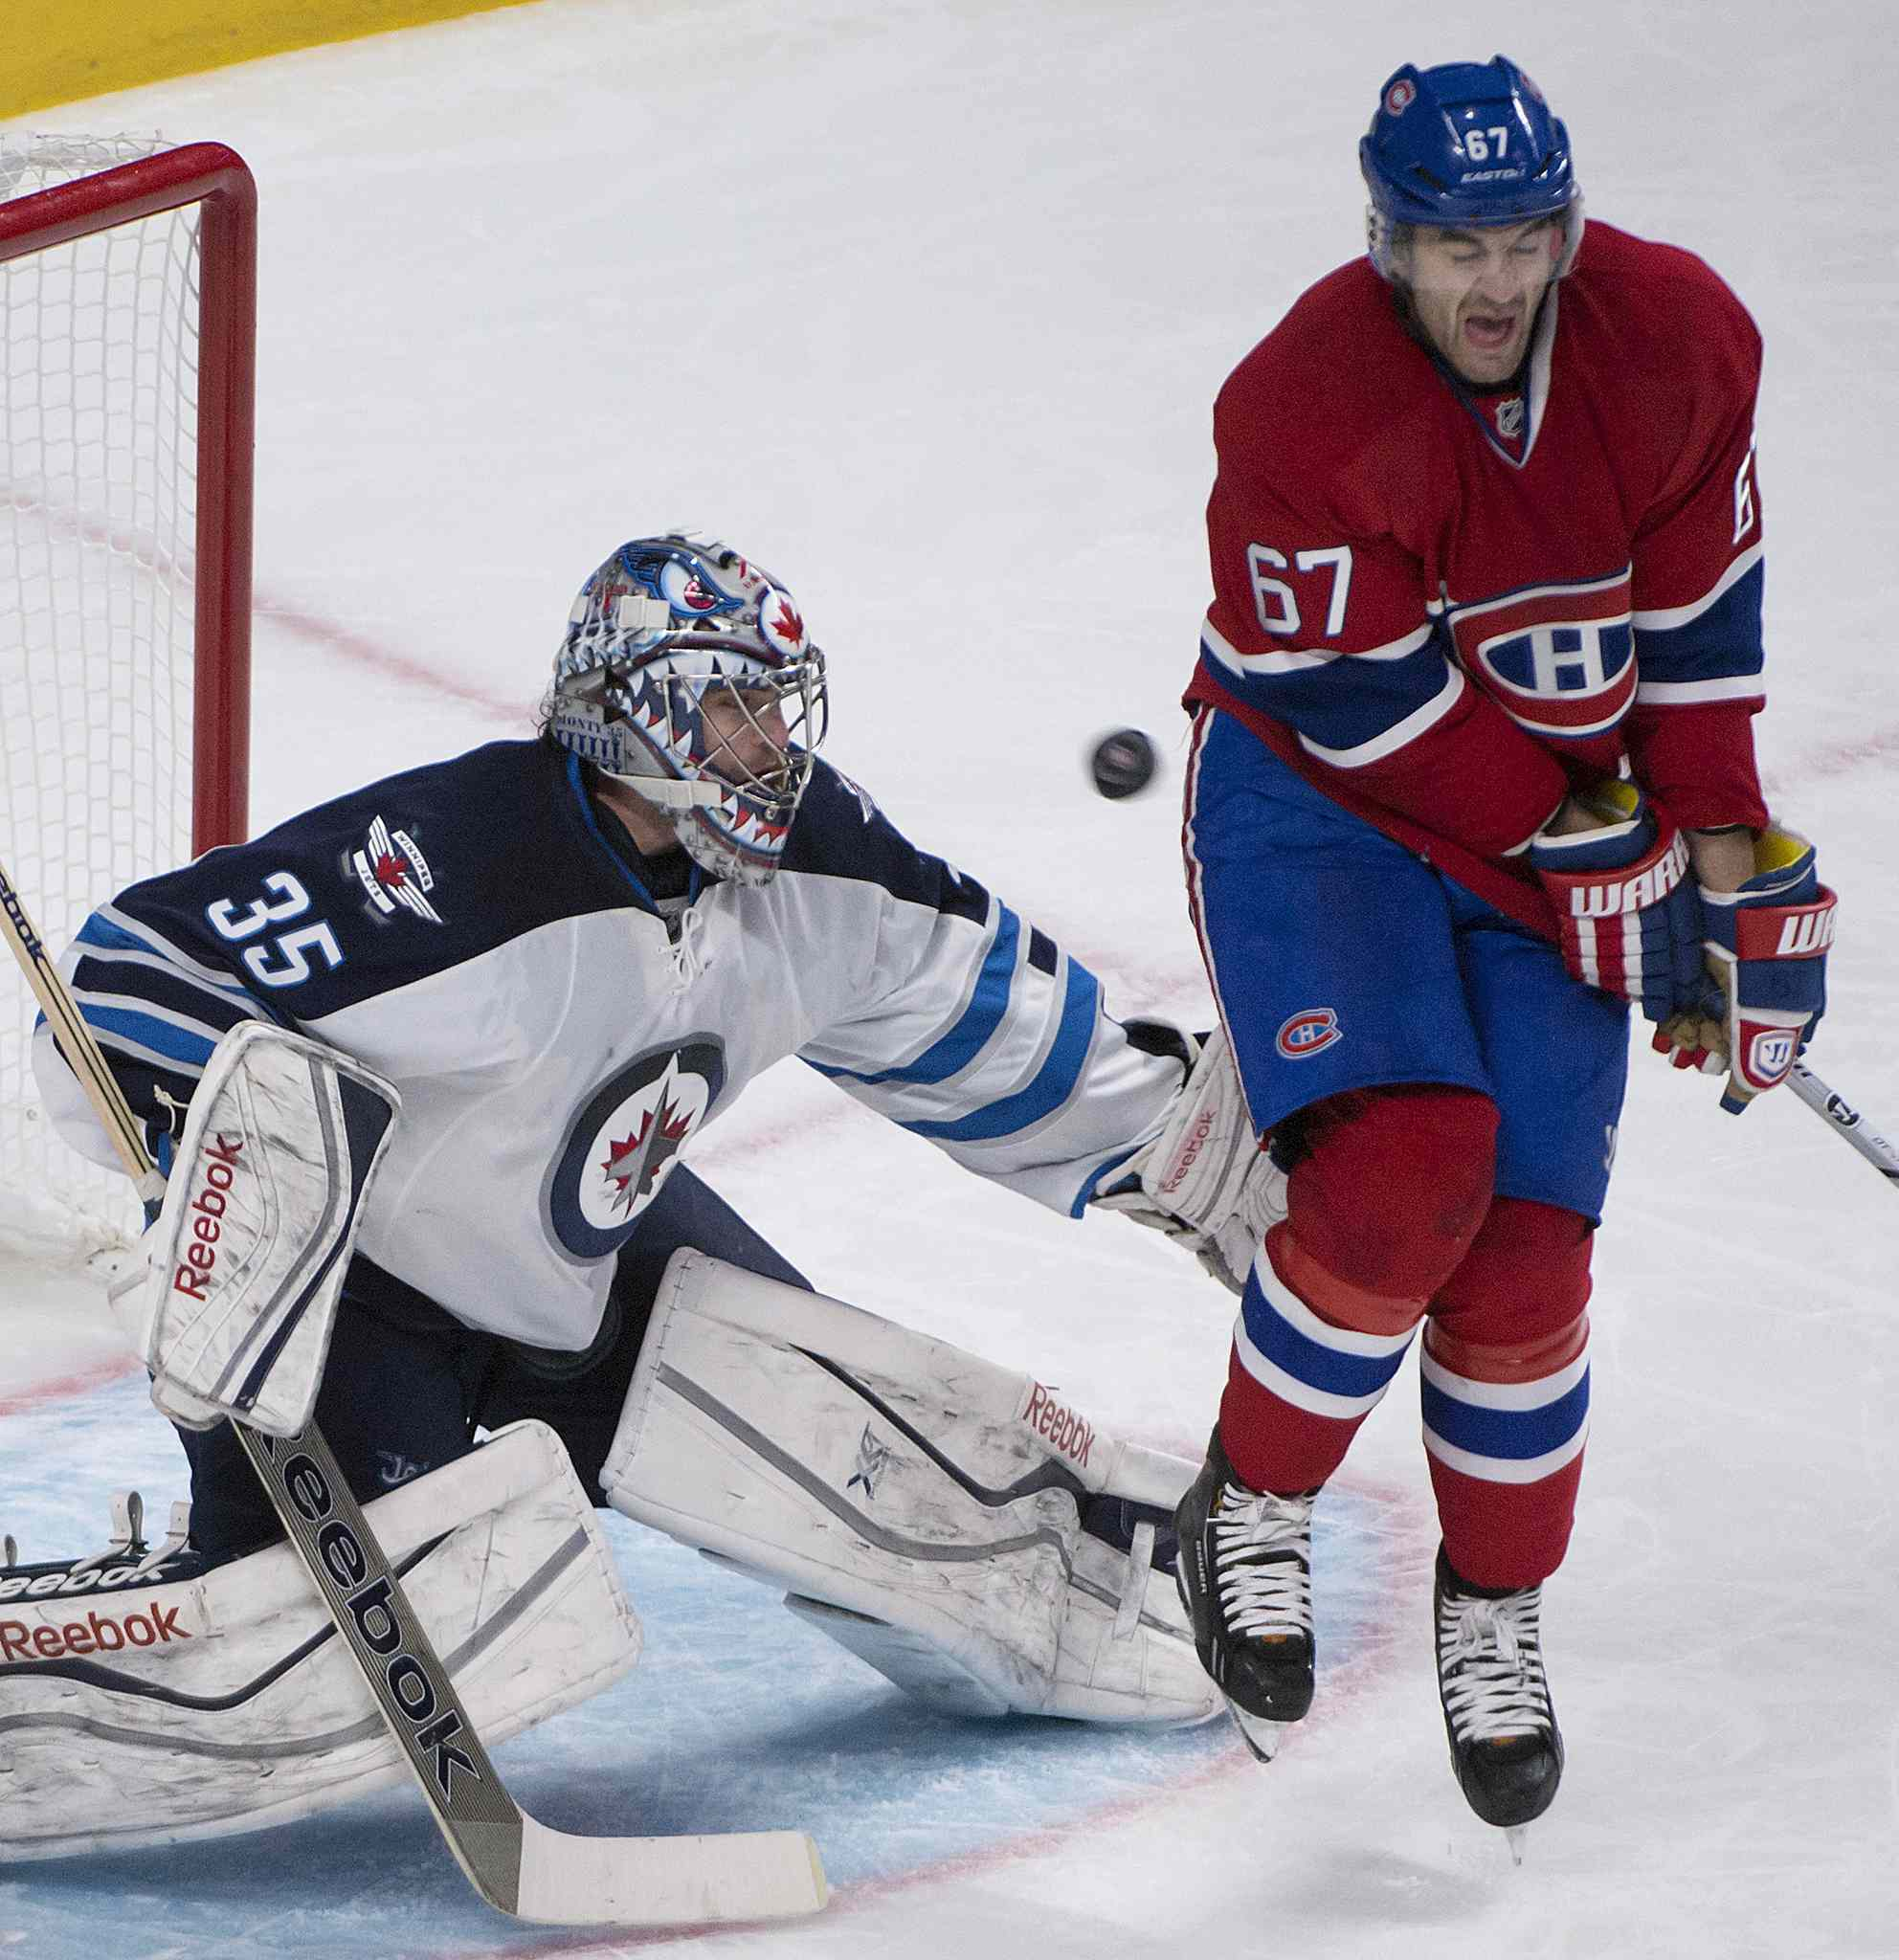 Montreal Canadien Max Pacioretty grimaces as he gets hit by the puck in front of Jets goalie Al Montoya, who was outstanding in the Jets 2-1 victory over Montreal.